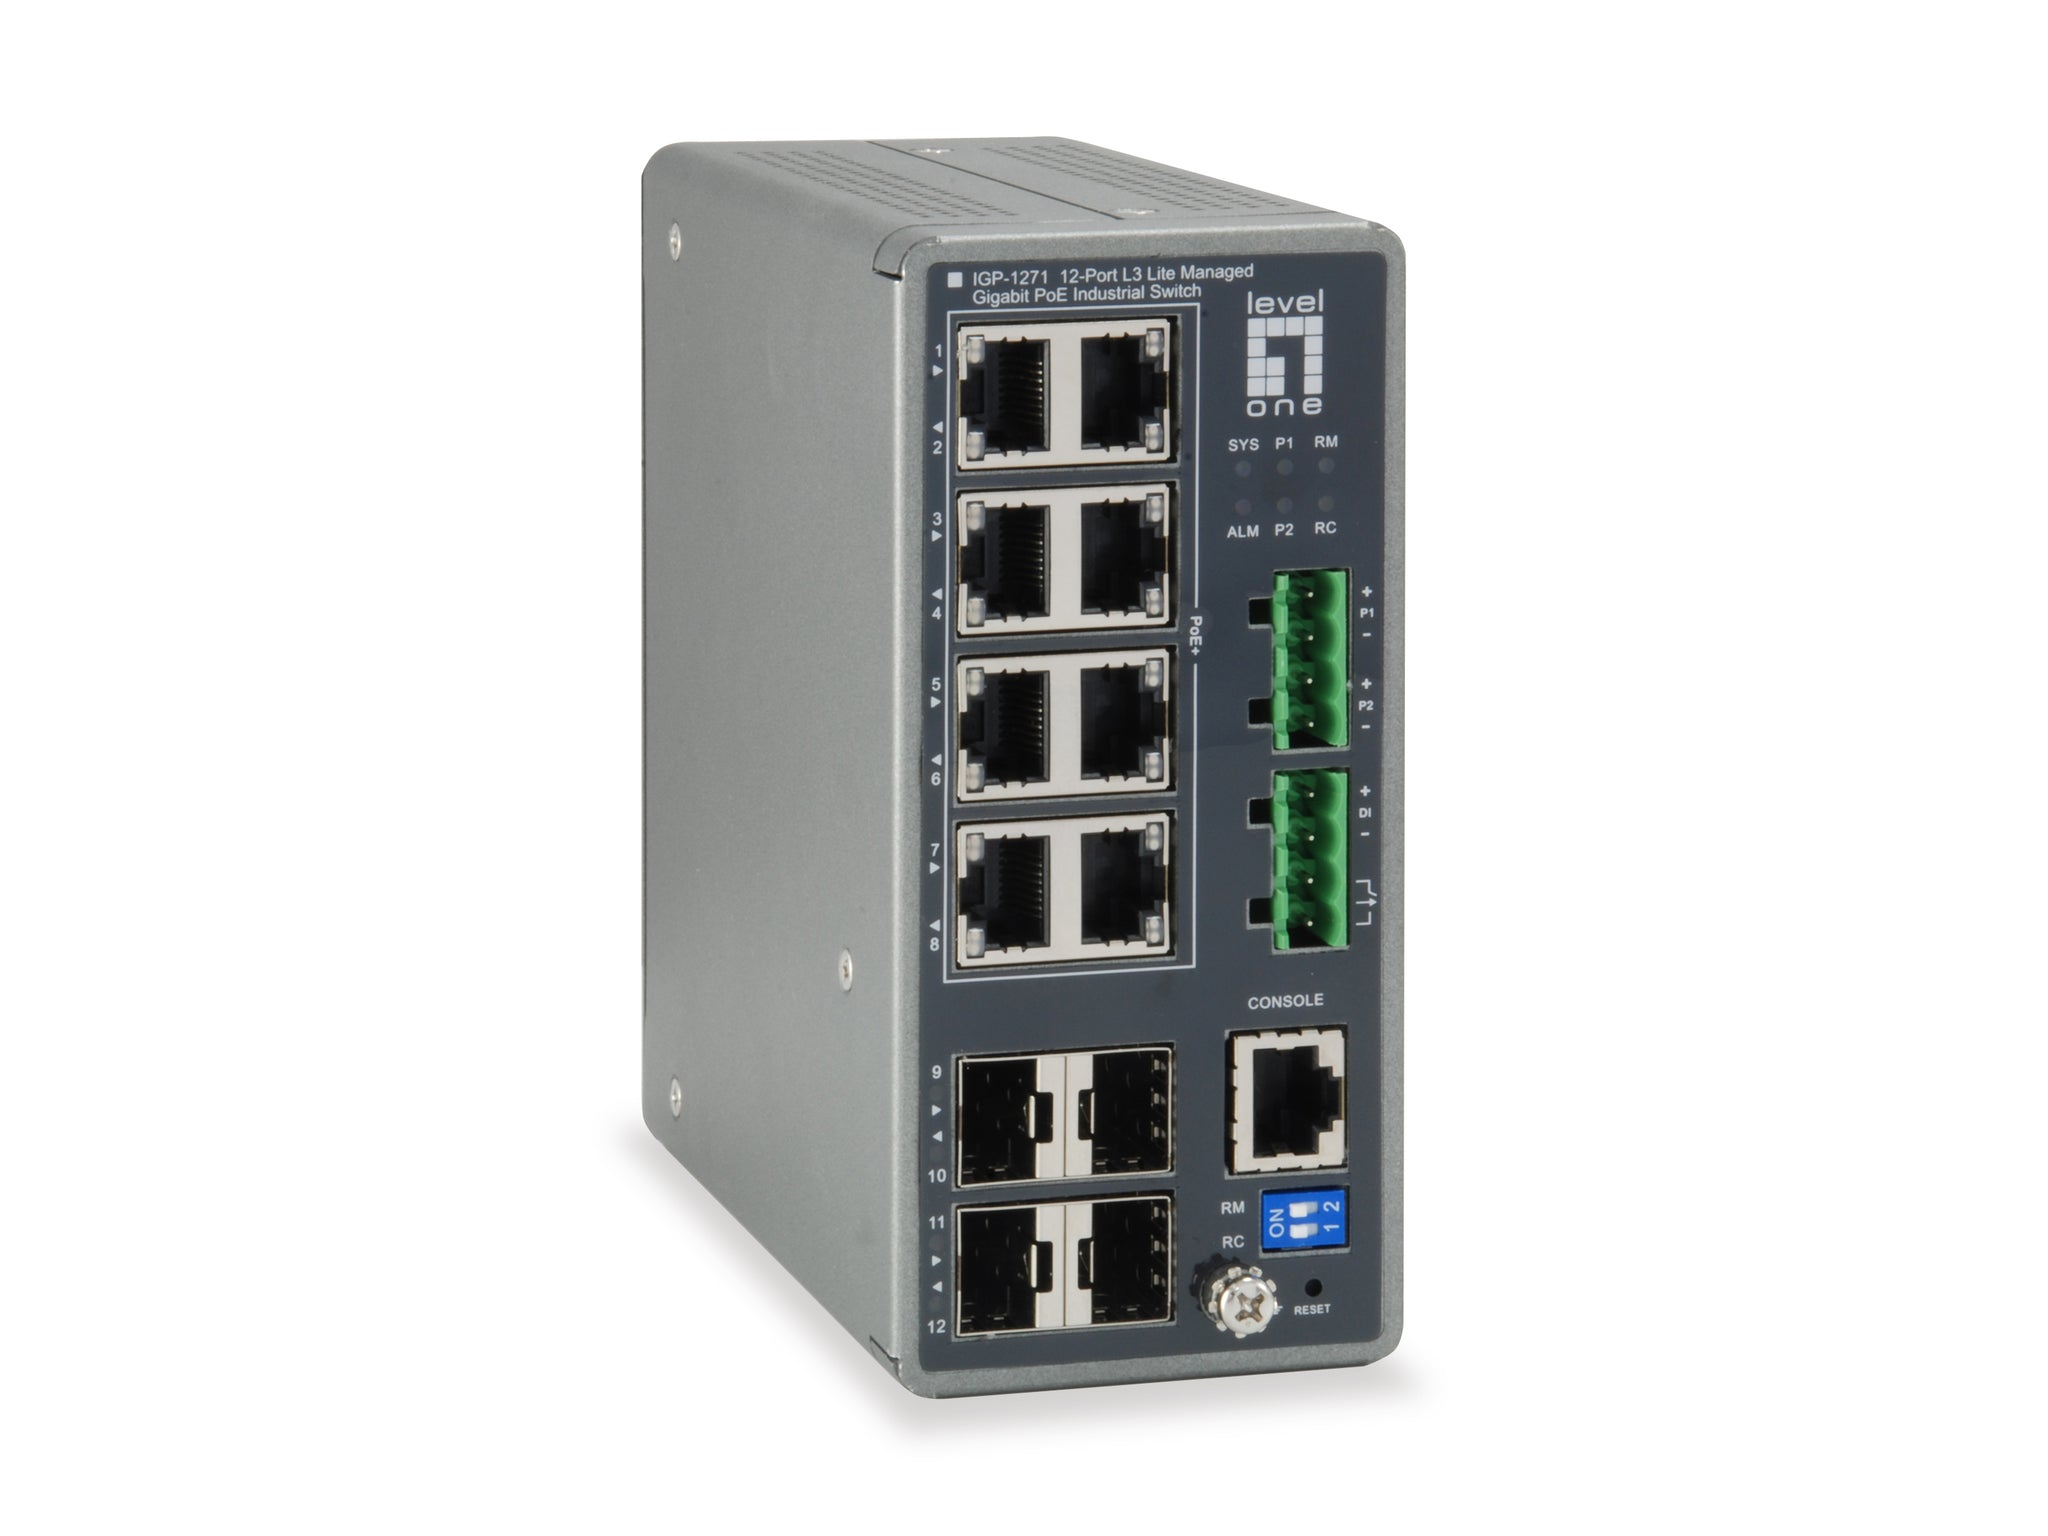 IGP-1271 TURING 12-Port L3 Lite Managed Gigabit Industrial Switch, 8 PoE Outputs, 240W, 802.3at/af PoE, 4 x SFP, -40°C to 75°C